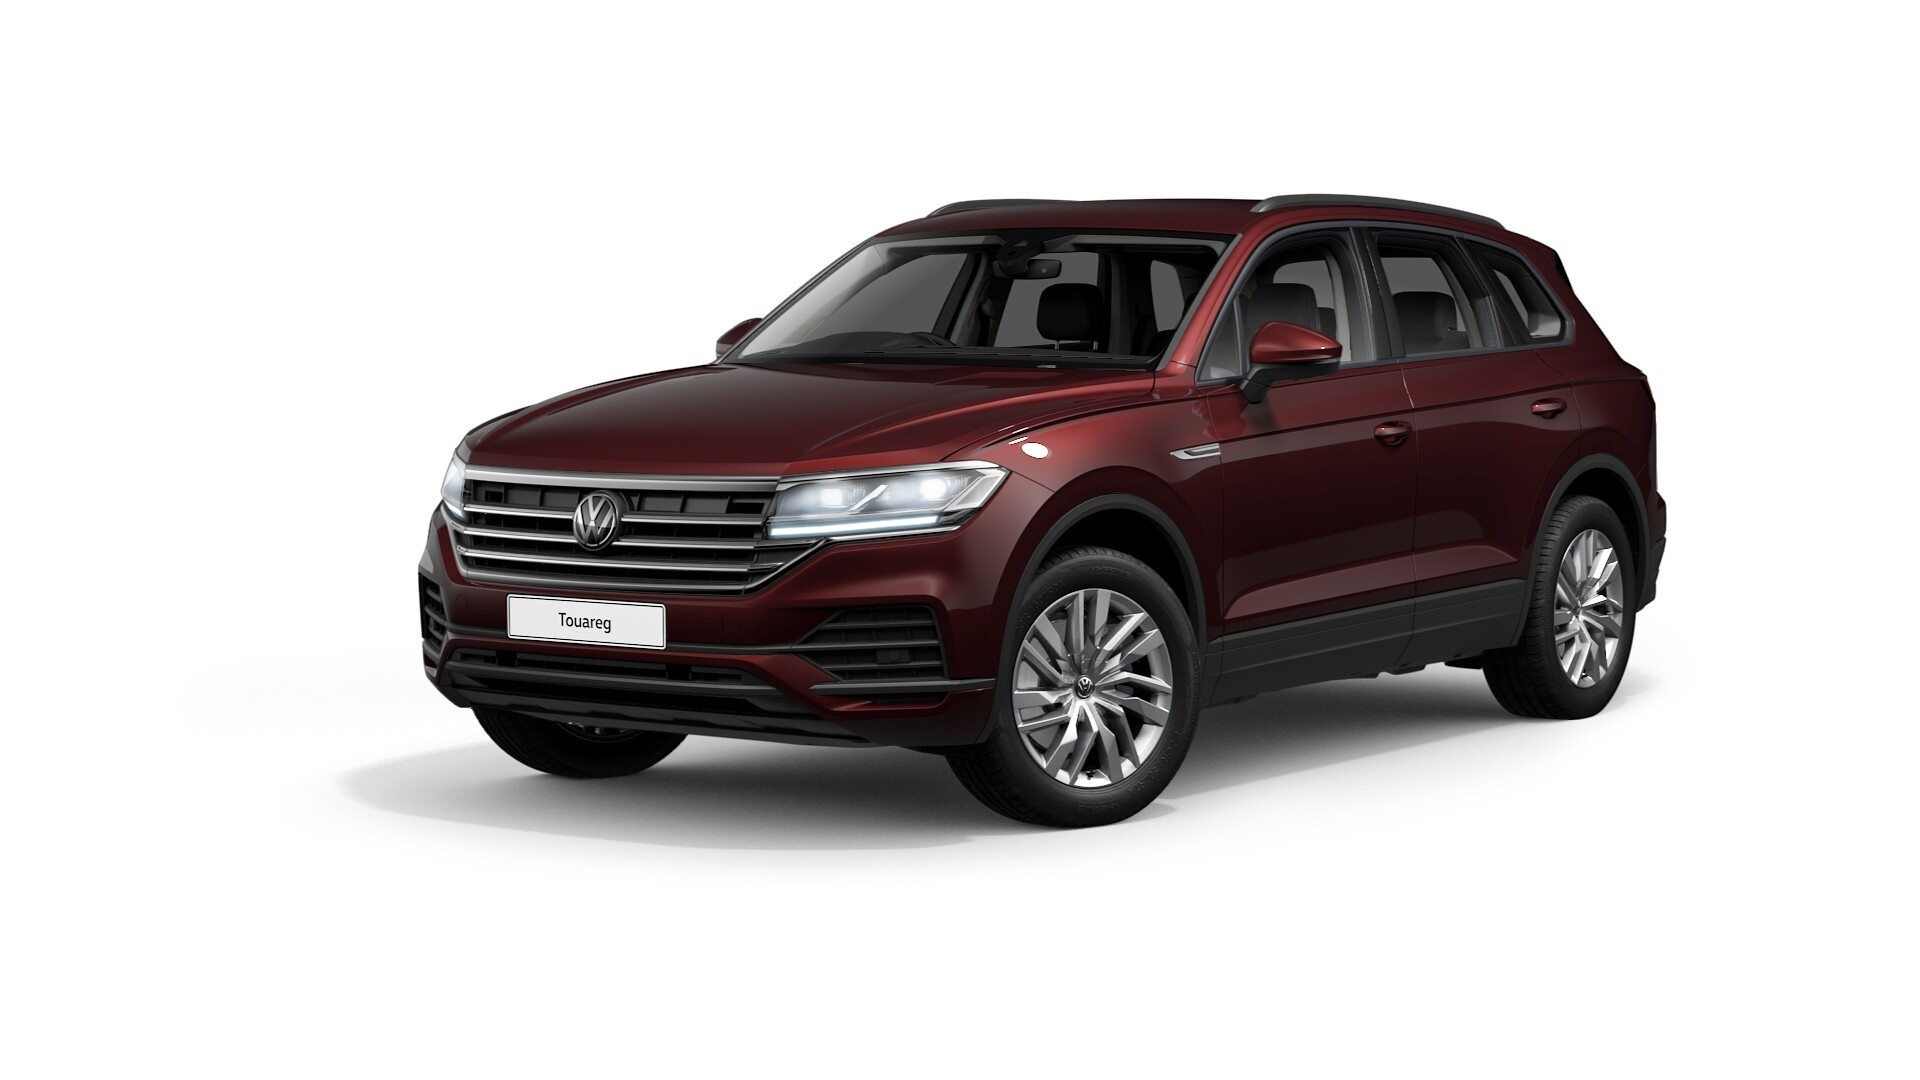 The new Touareg SE enters the range as the base option